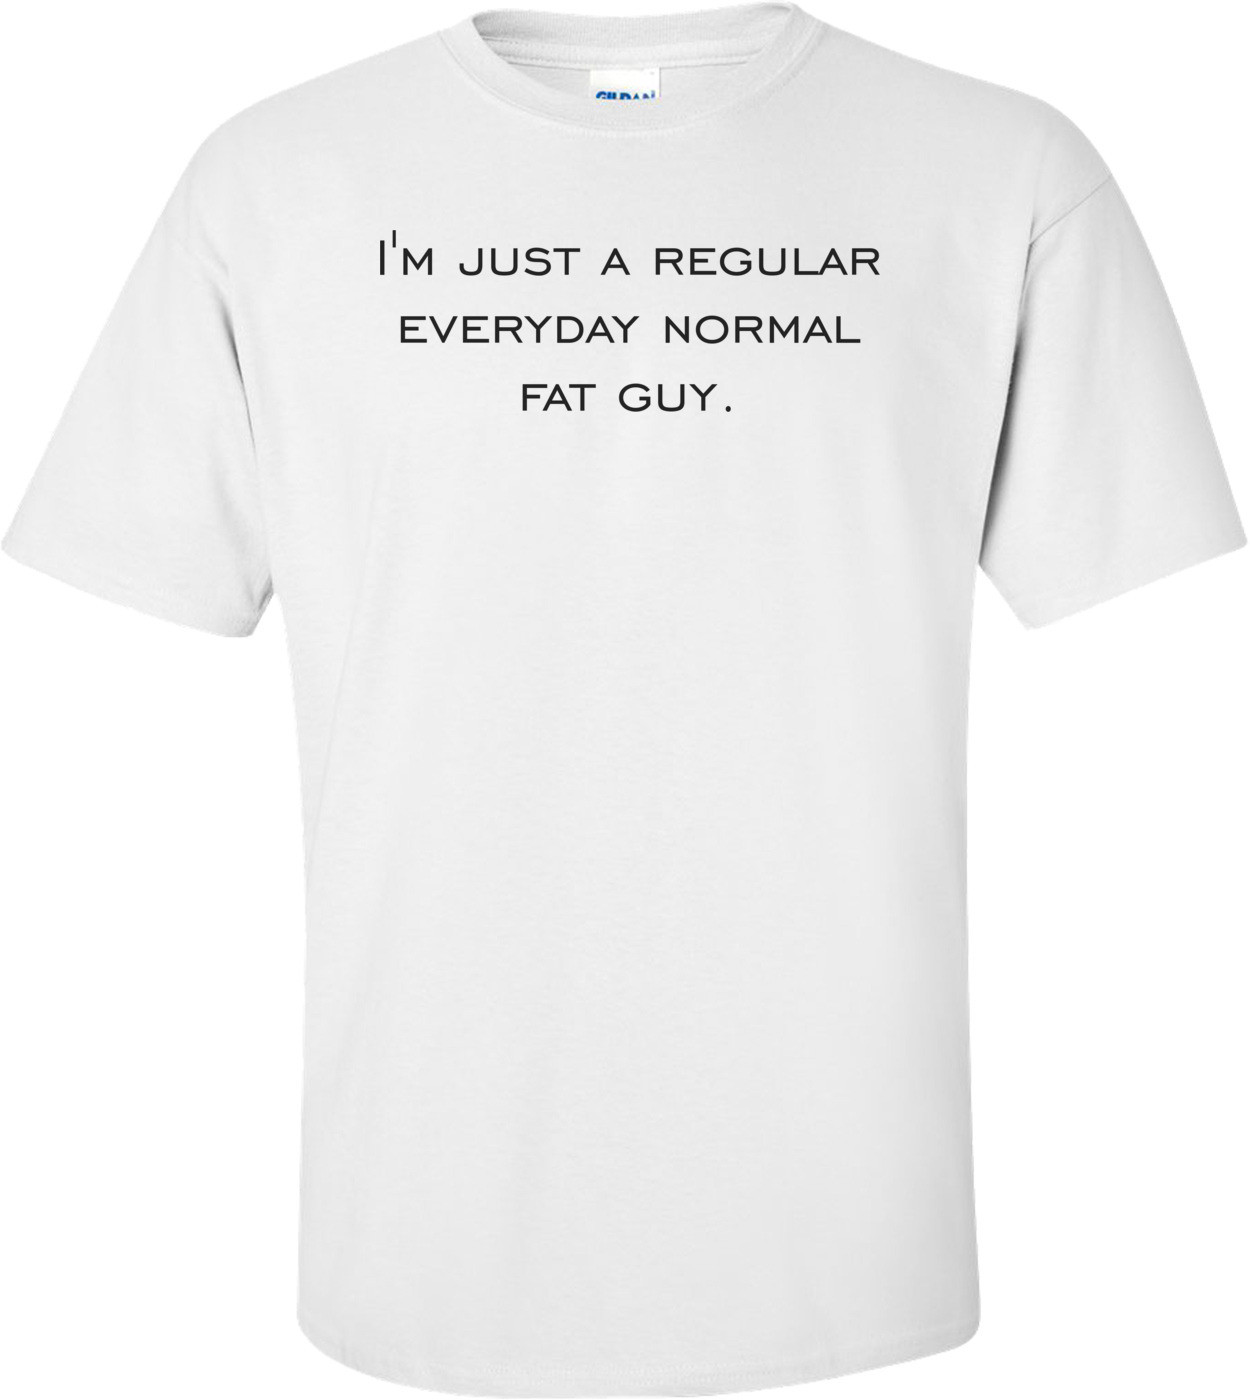 I'm just a regular everyday normal fat guy. Shirt